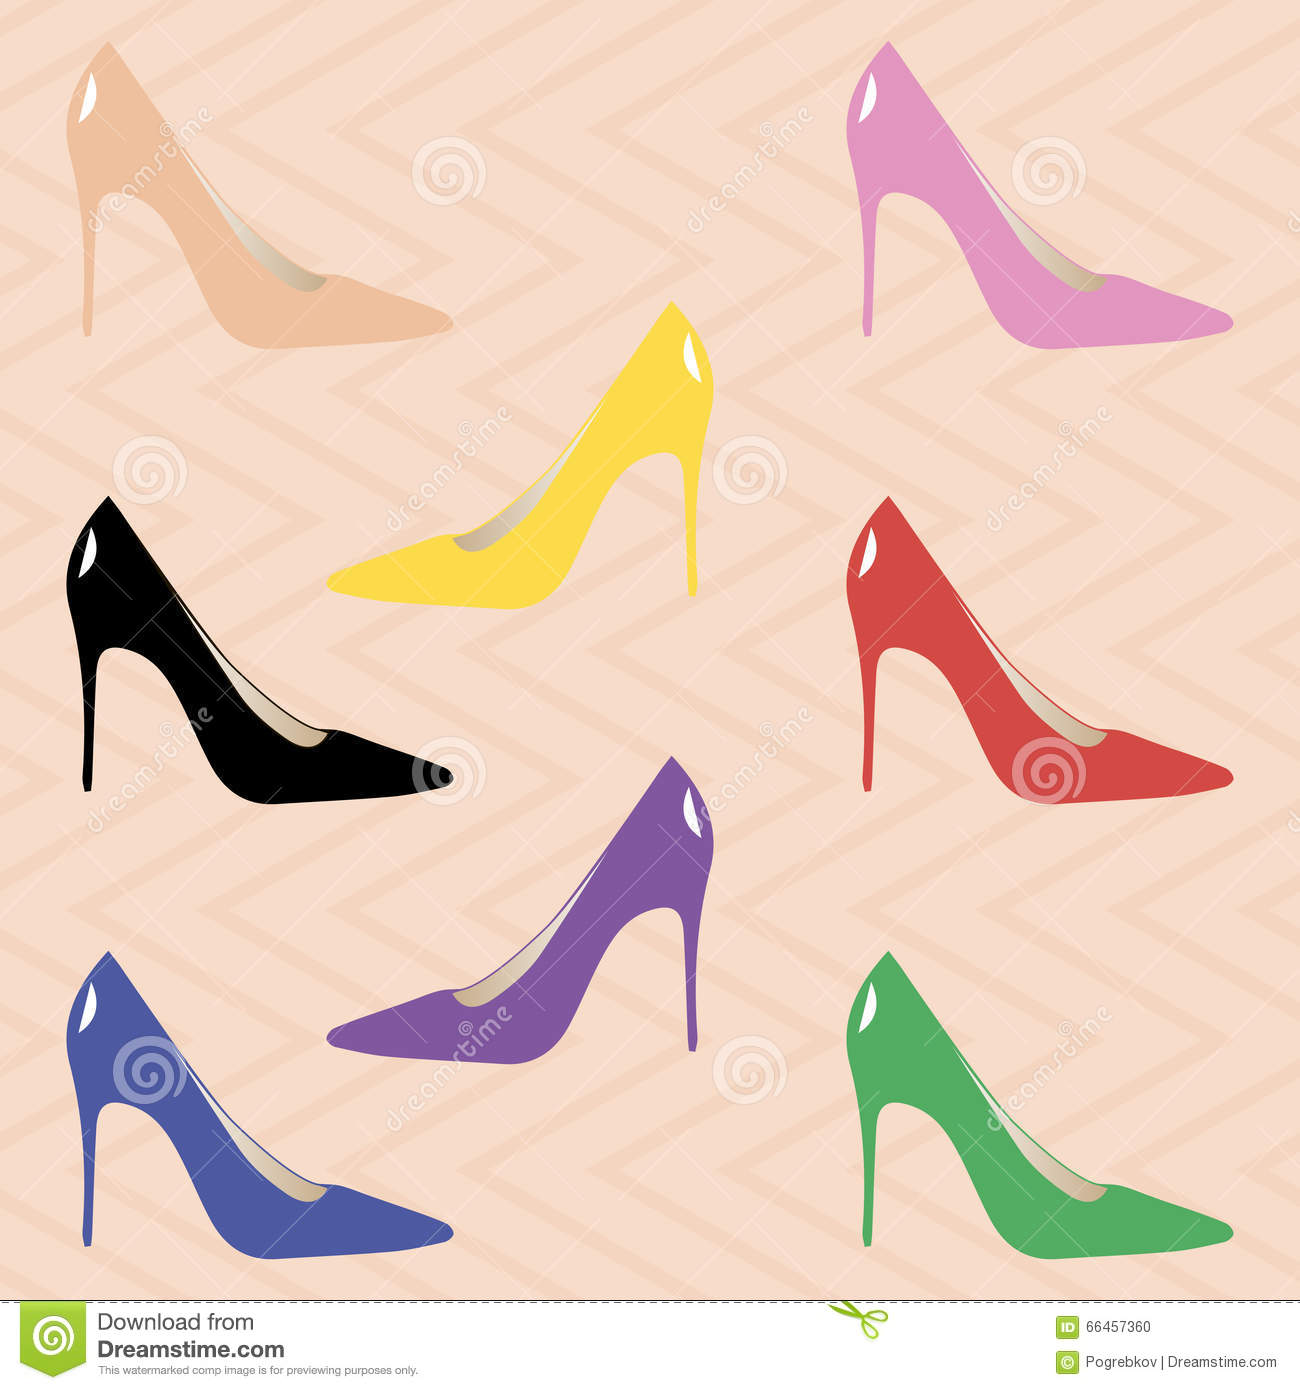 eb00f163ac3 Classic High Heel Pumps For Women Stock Vector - Illustration of ...